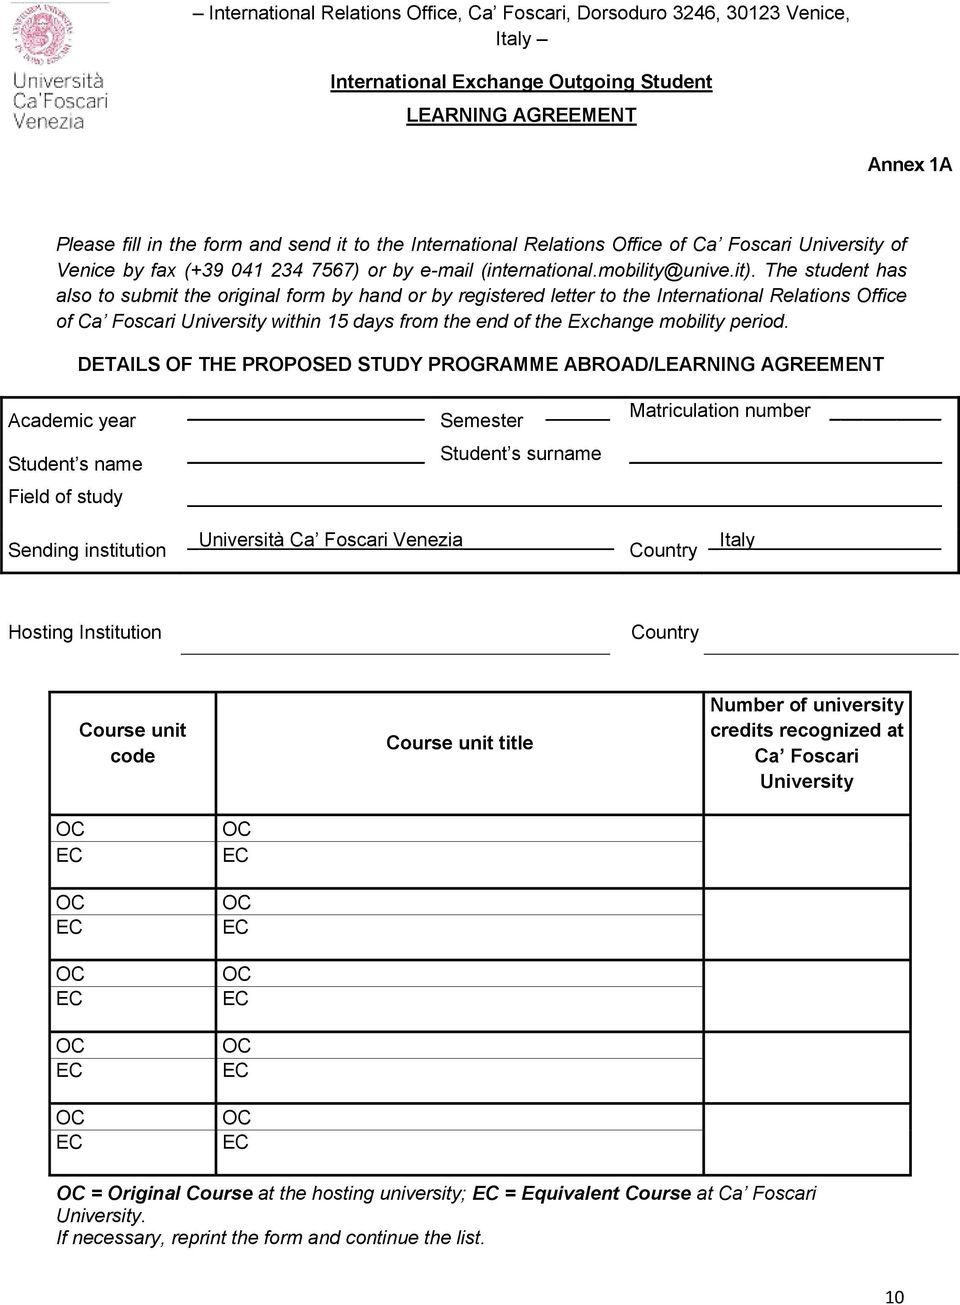 The student has also to submit the original form by hand or by registered letter to the International Relations Office of Ca Foscari University within 15 days from the end of the Exchange mobility